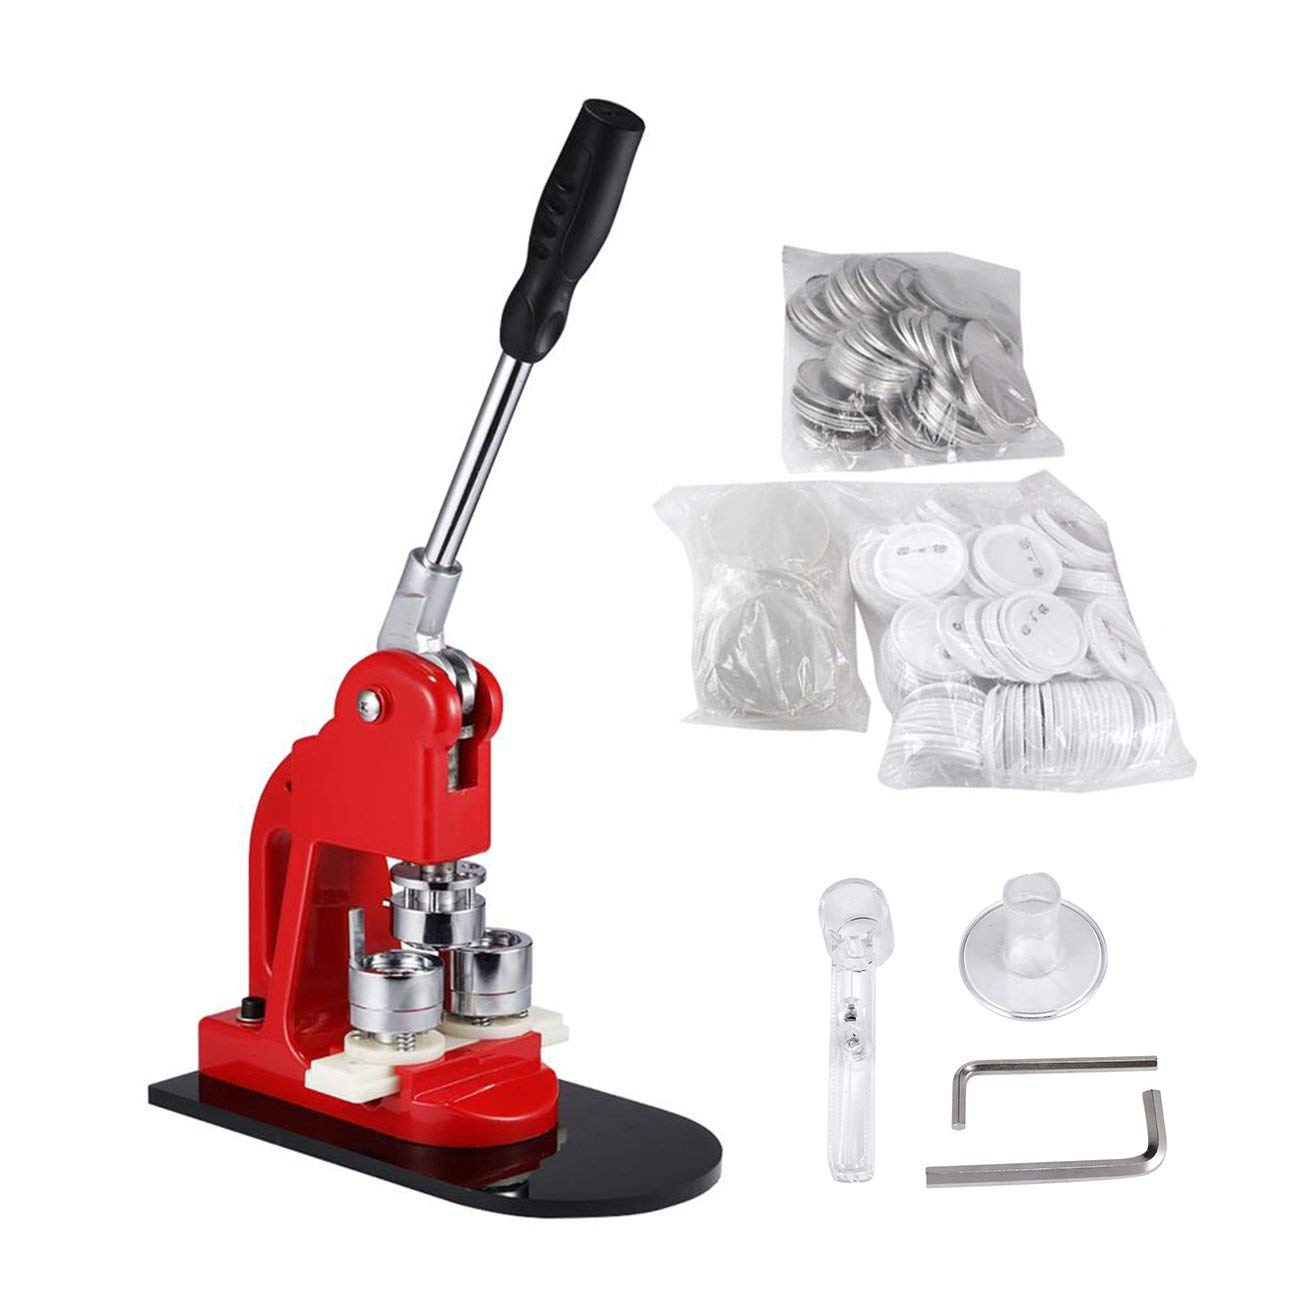 BEAMNOVA Button Badge Maker Machine 1-1/4 inch with 1000 Button Parts and Circle Cutter by BEAMNOVA